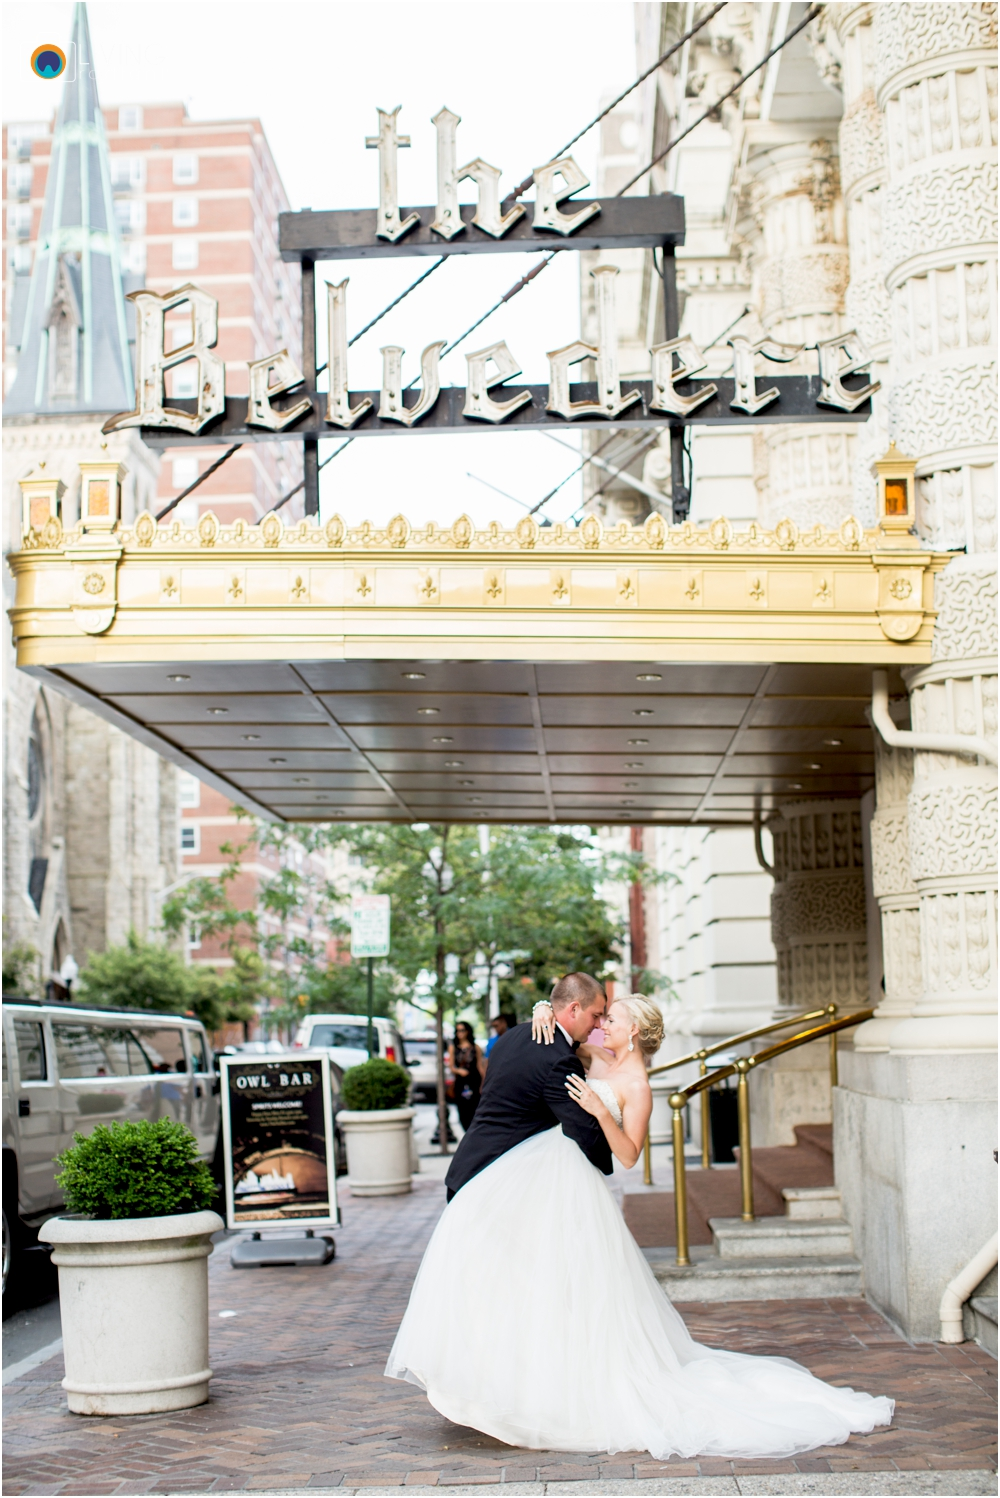 The-Belvedere-Hotel-Baltimore-Weddings-Inner-Harbor-Downtown-Living-Radiant-Photography-Ballroom-Wedding-Photos-Holmes-Wedding_0214.jpg